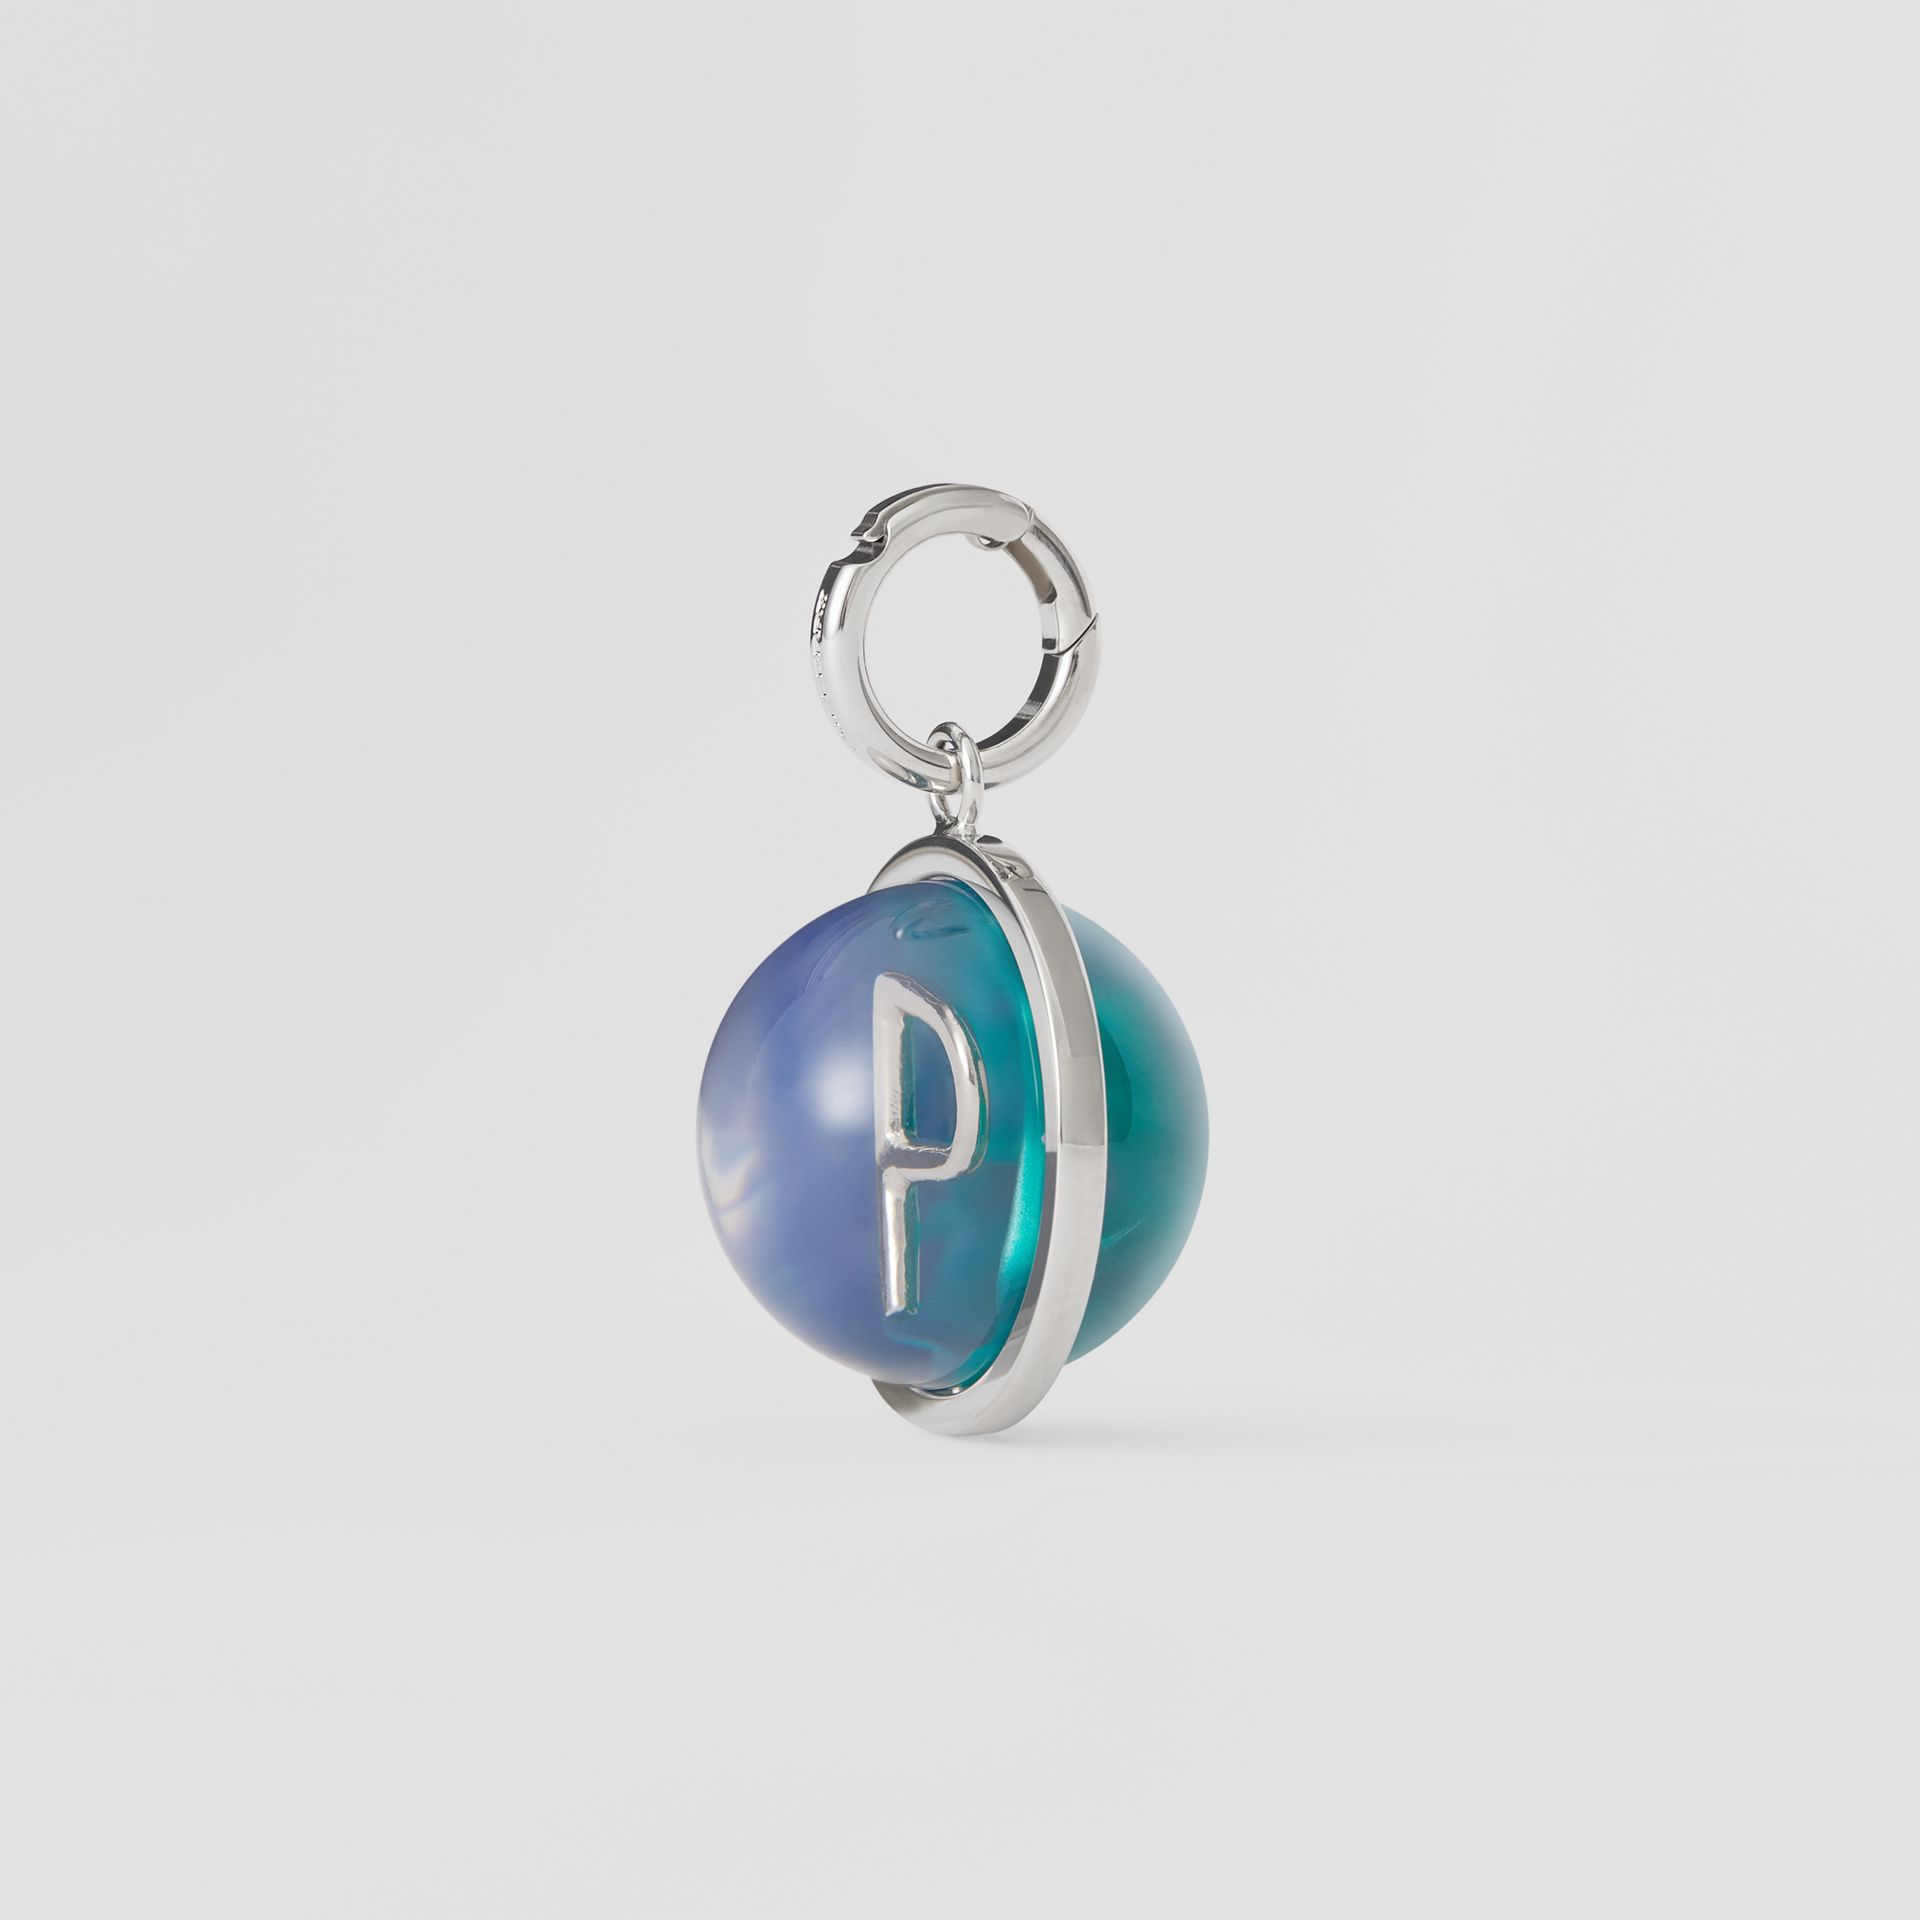 Marbled Resin 'P' Alphabet Charm in Palladio/ocean Blue - Women | Burberry - gallery image 4